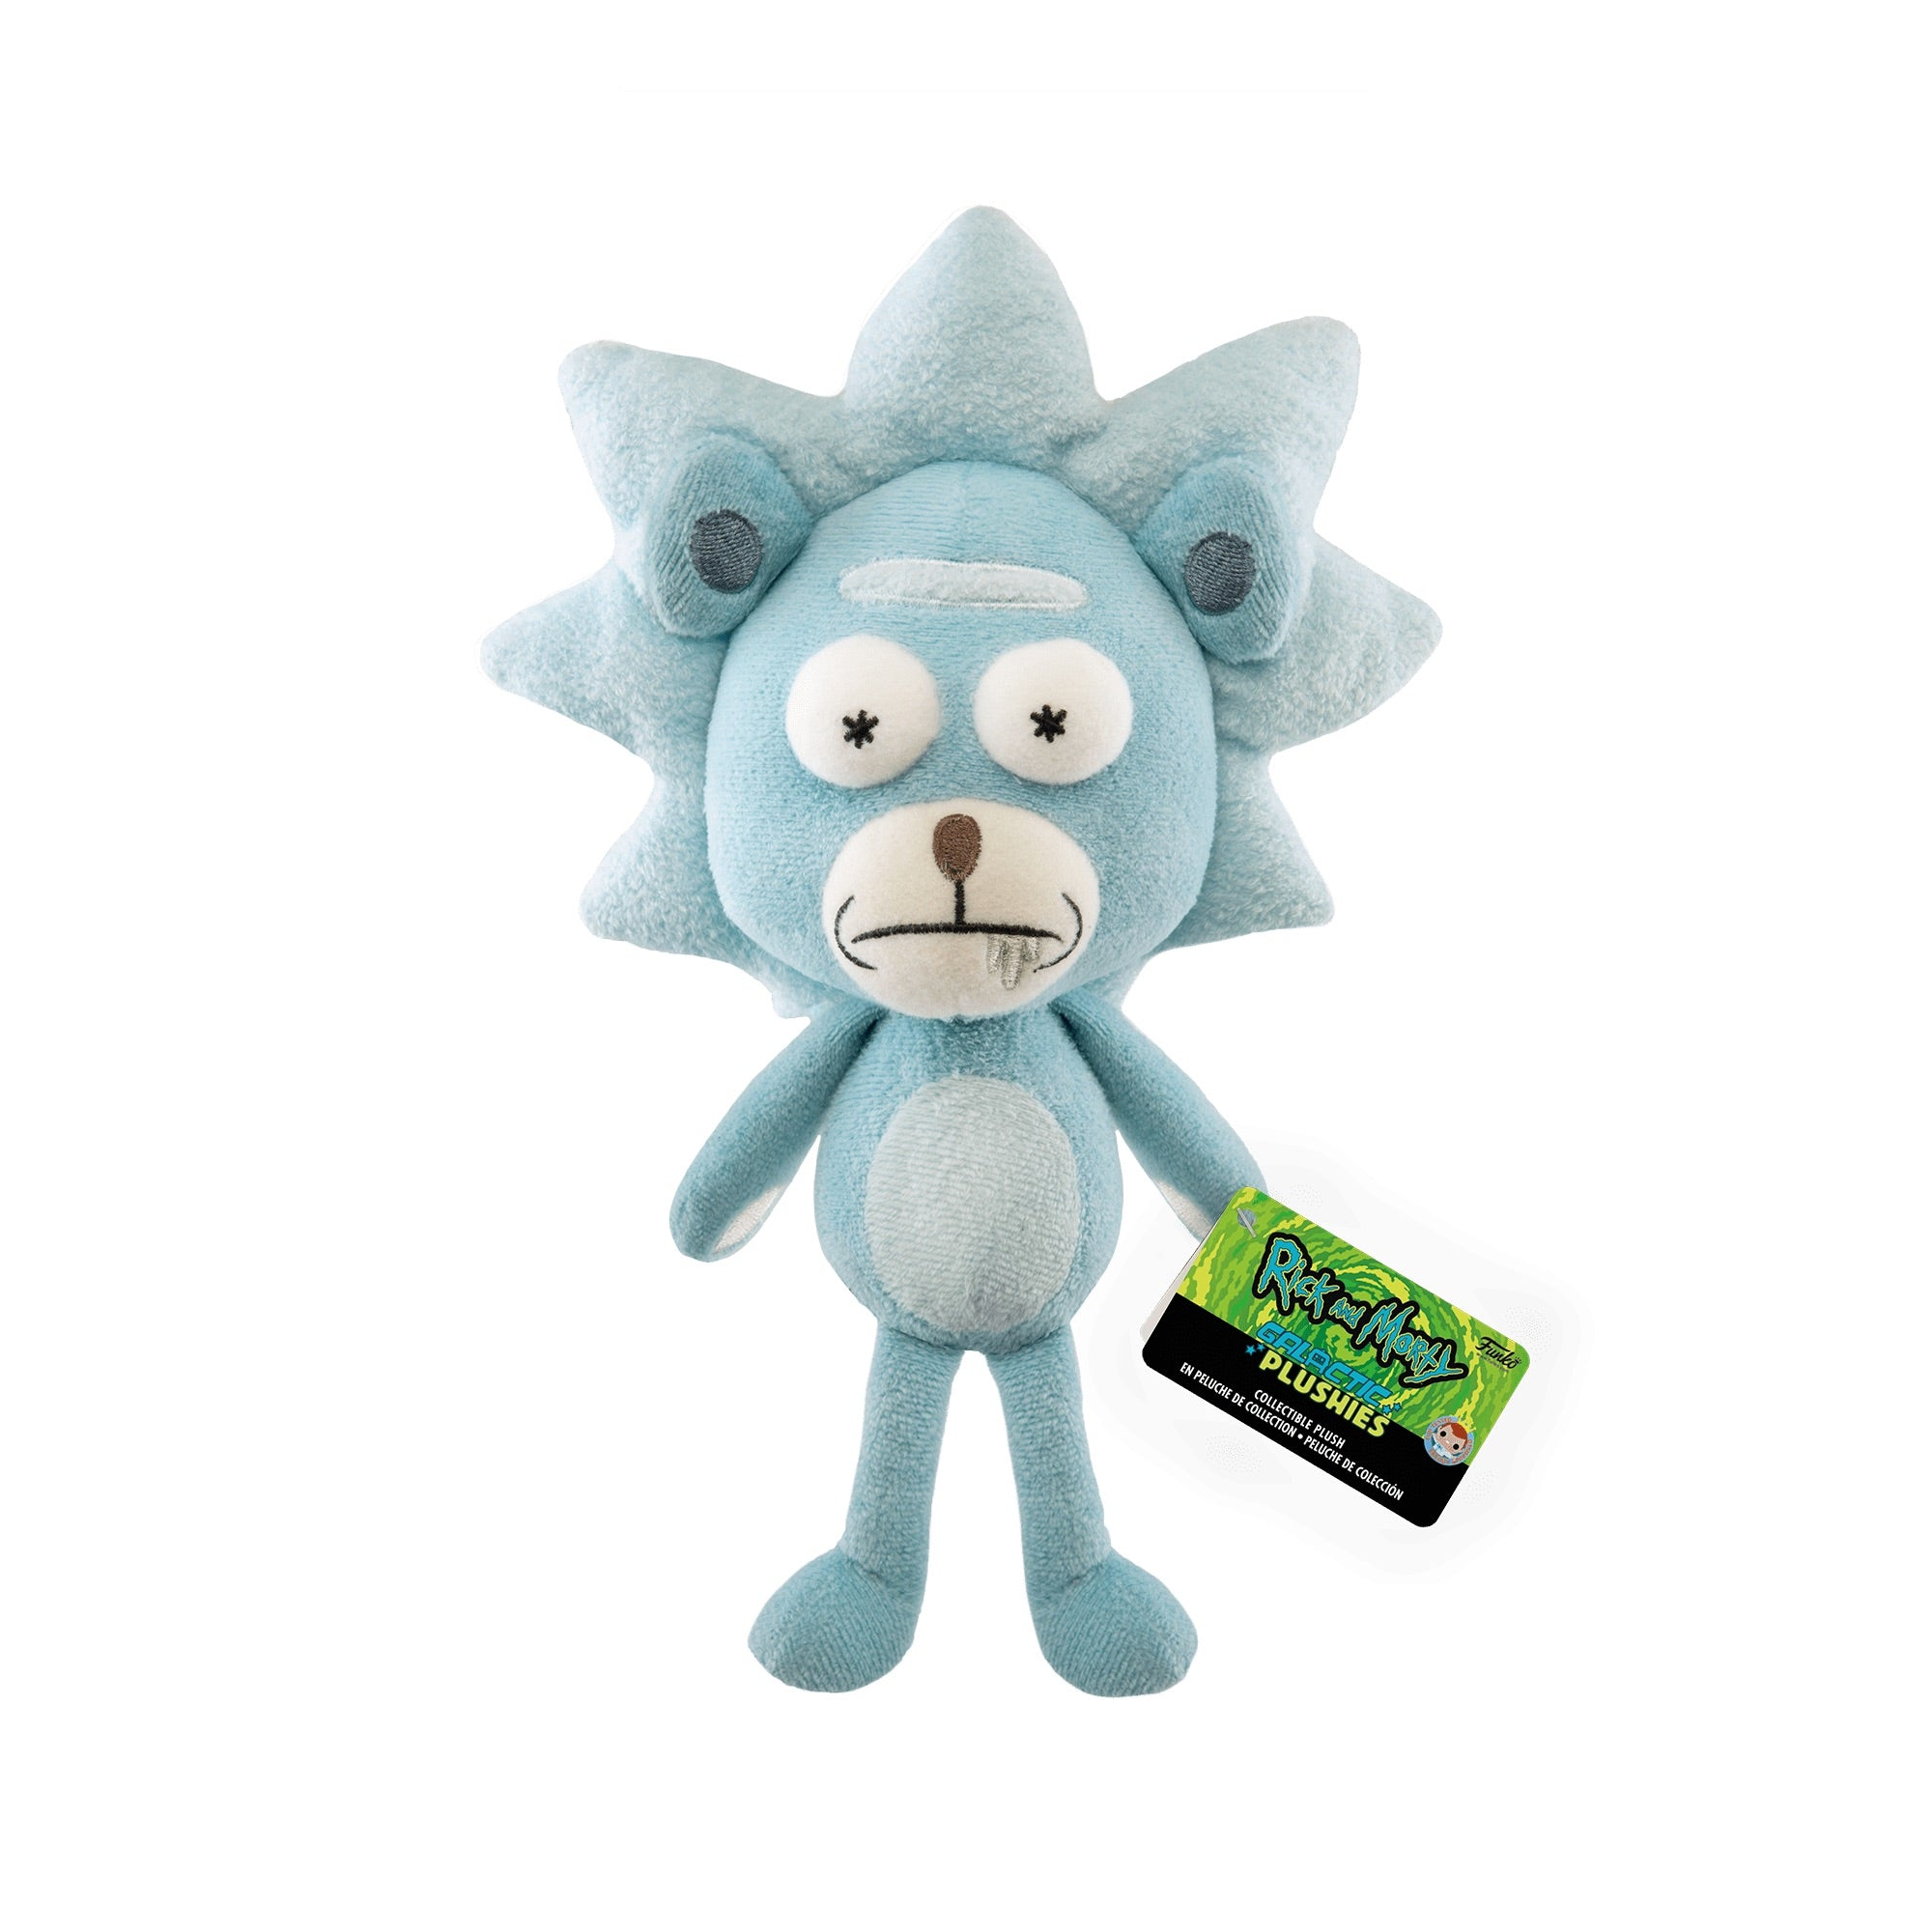 Rick and Morty Teddy Rick Galactic Plushie